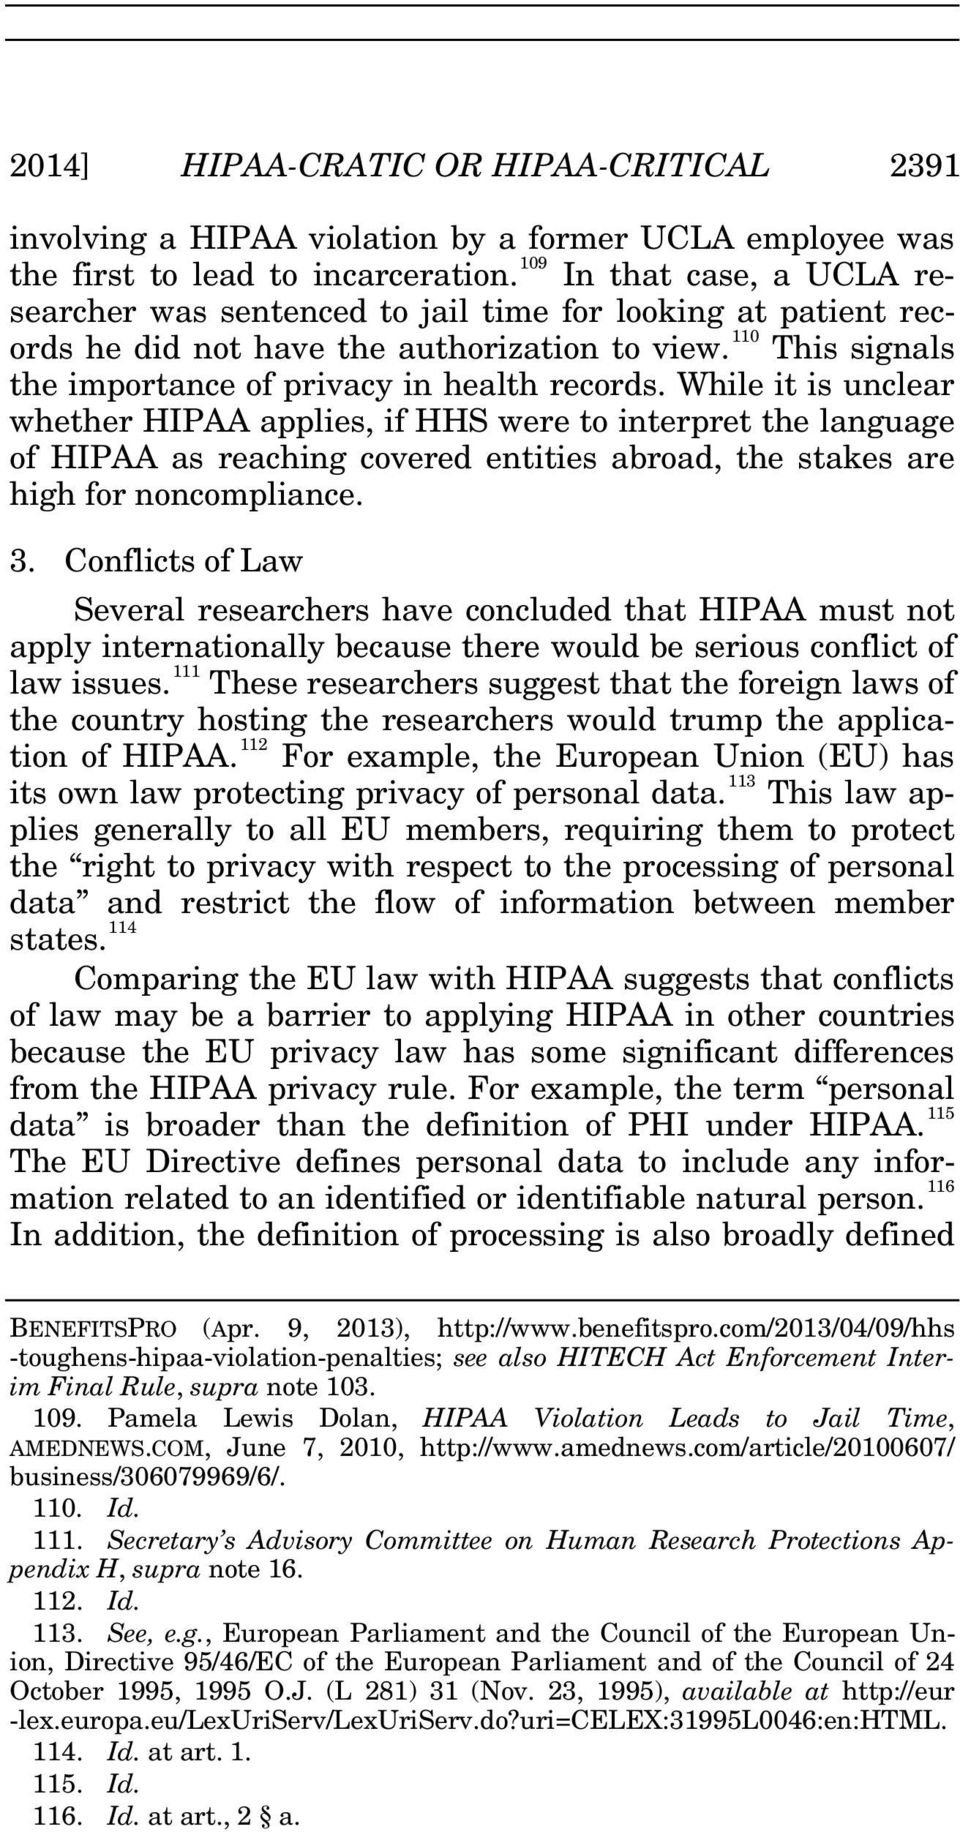 While it is unclear whether HIPAA applies, if HHS were to interpret the language of HIPAA as reaching covered entities abroad, the stakes are high for noncompliance. 3.